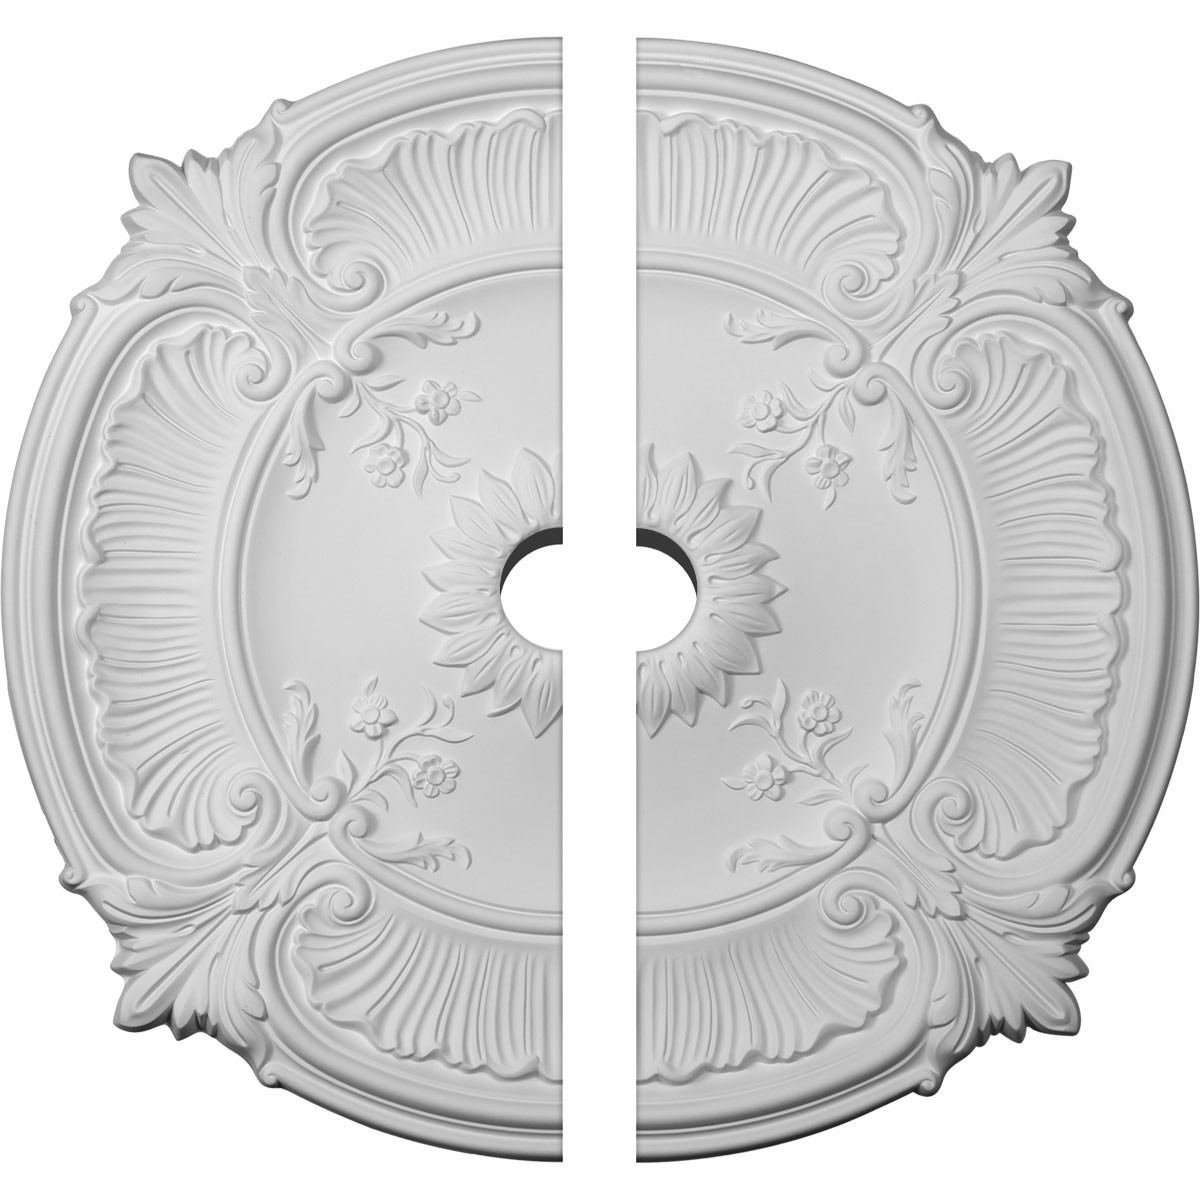 """EM-CM30AT2-03000 - 30 1/8""""OD x 3""""ID x 1 1/2""""P Attica Acanthus Leaf Ceiling Medallion, Two Piece (Fits Canopies up to 3 1/4"""")"""